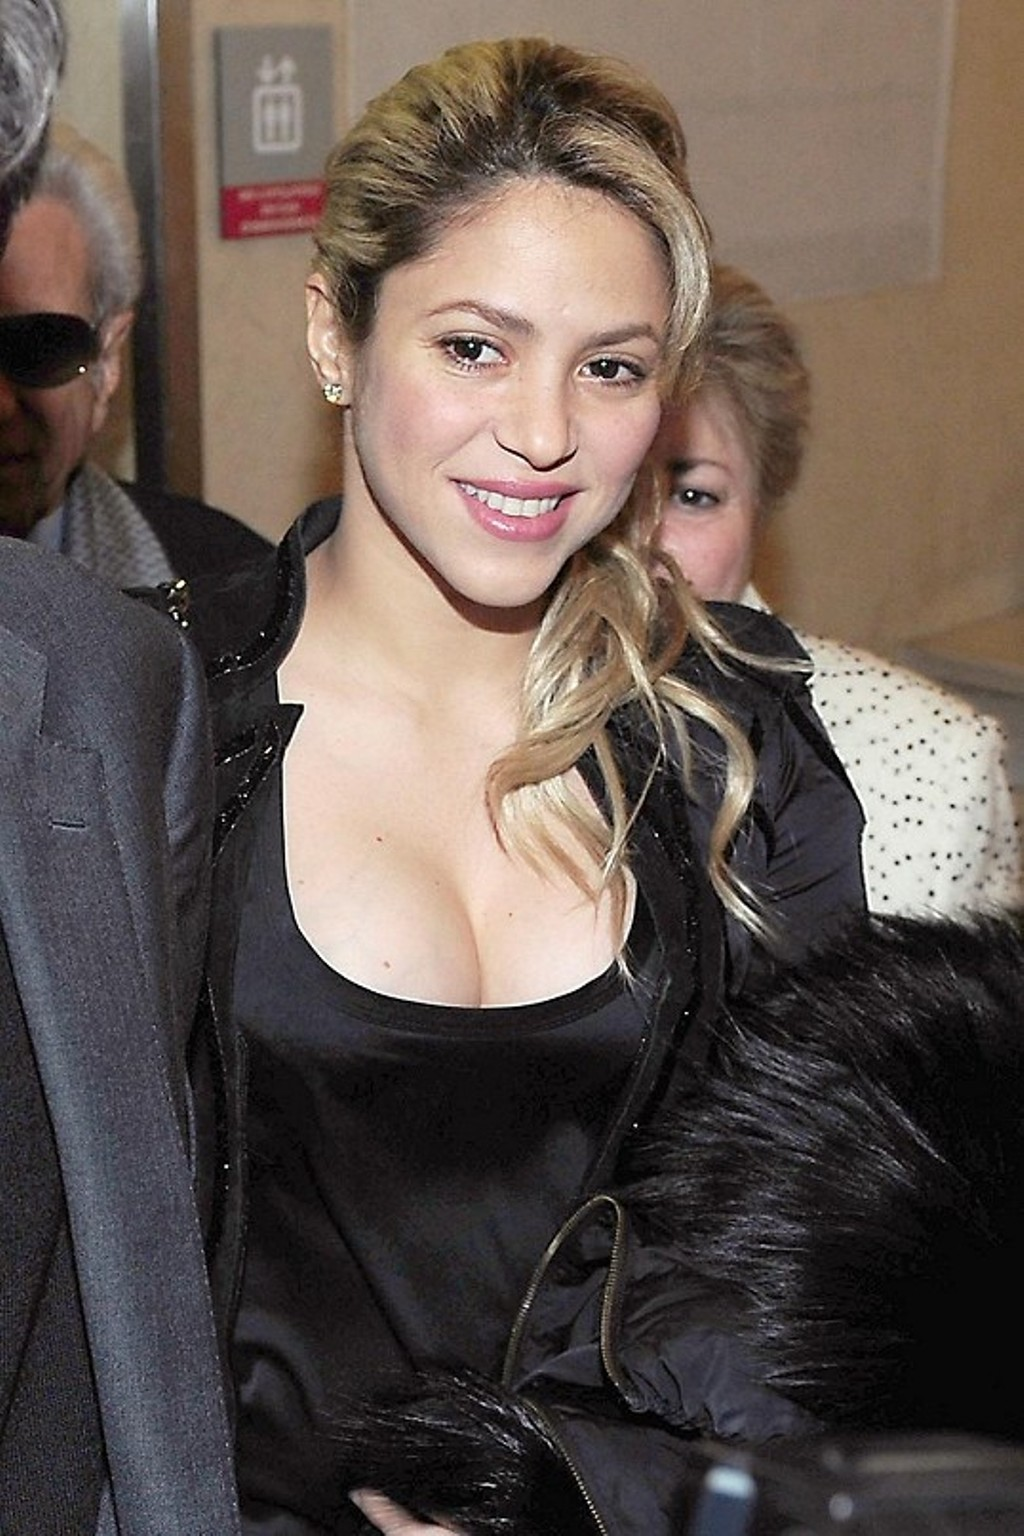 Shakira has bigger breast